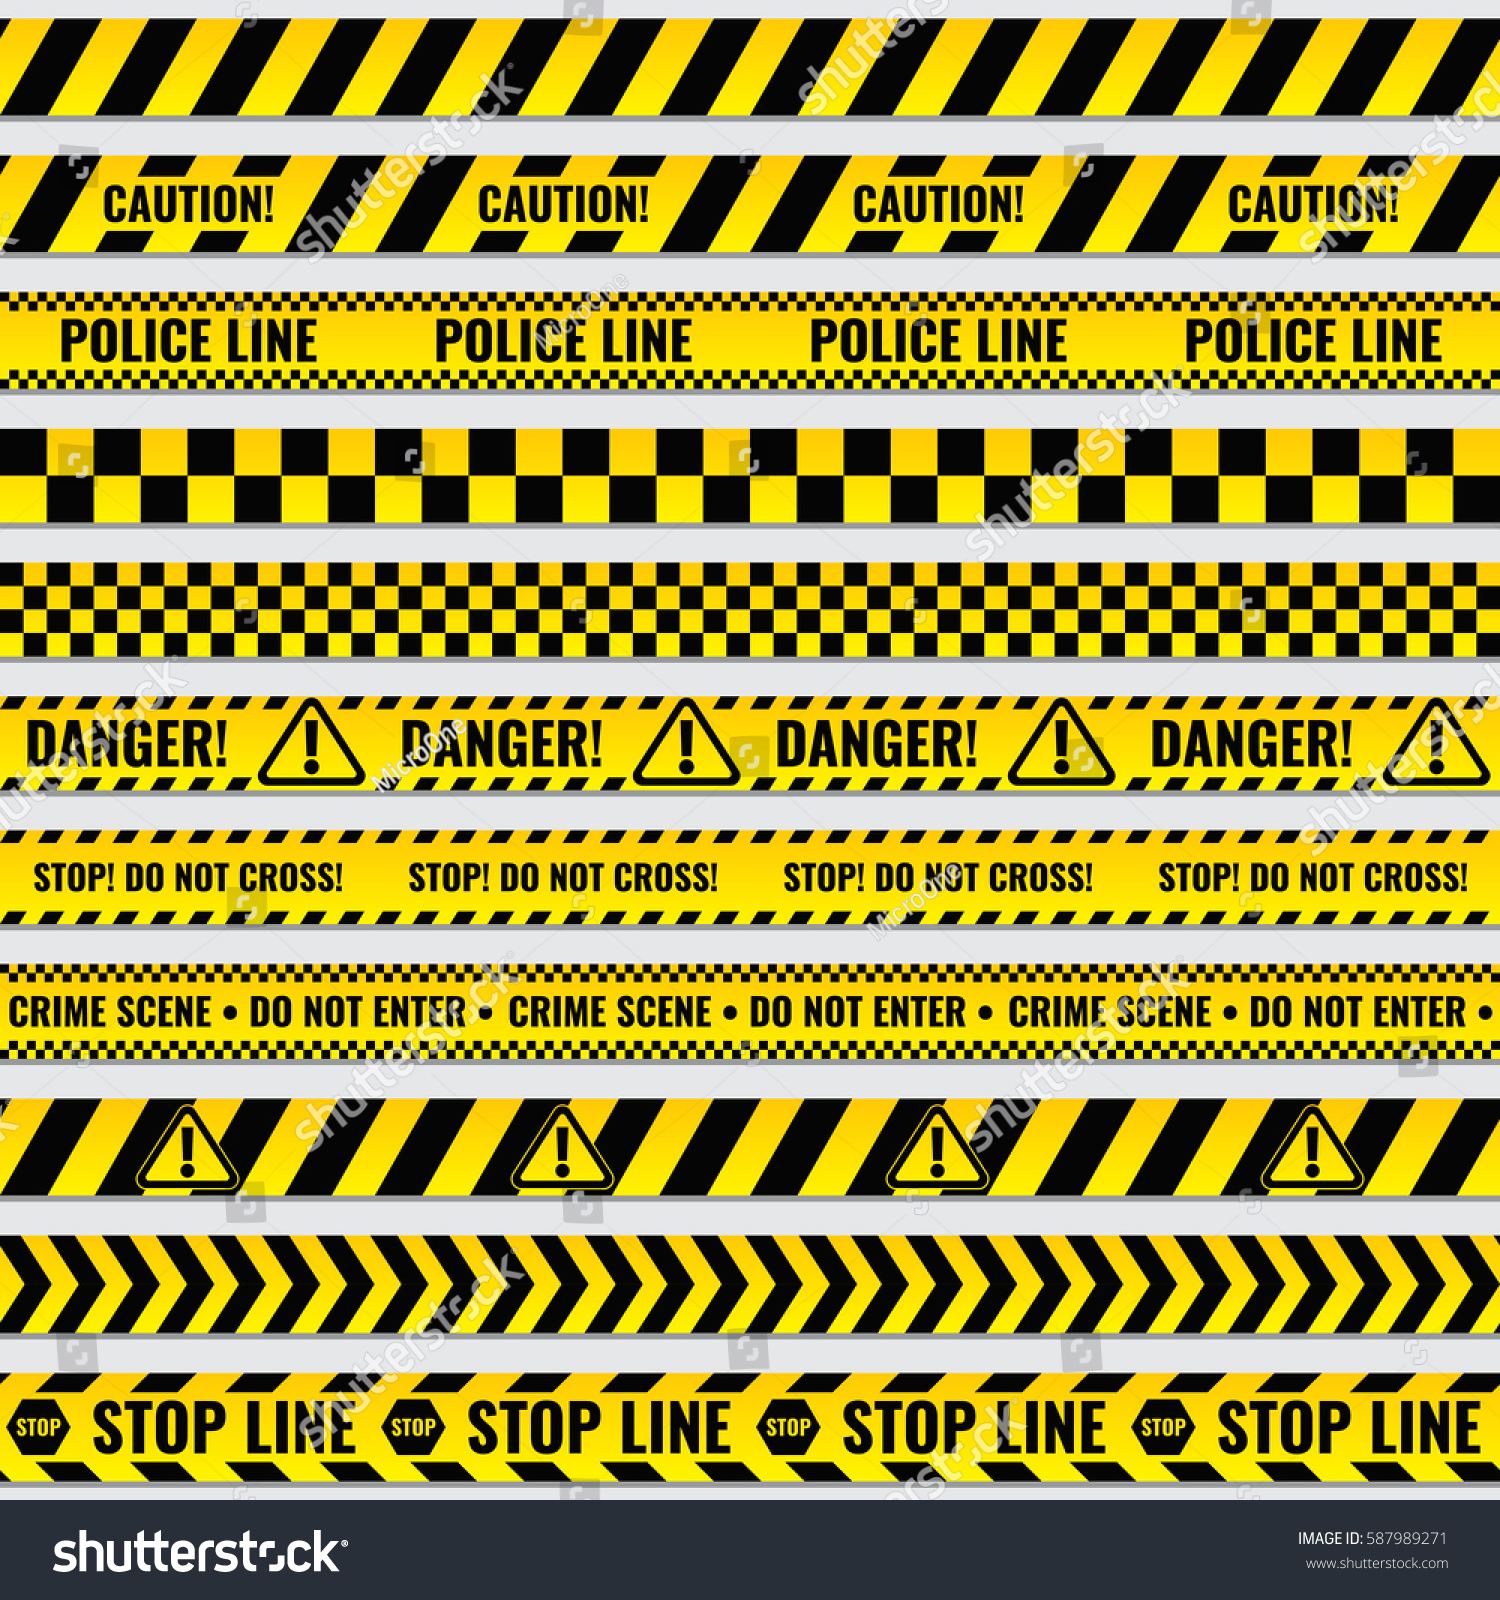 Border frame with black and yellow stripe on white background - Border Frame With Black And Yellow Stripe On White Background Black And Yellow Police Stripe Download